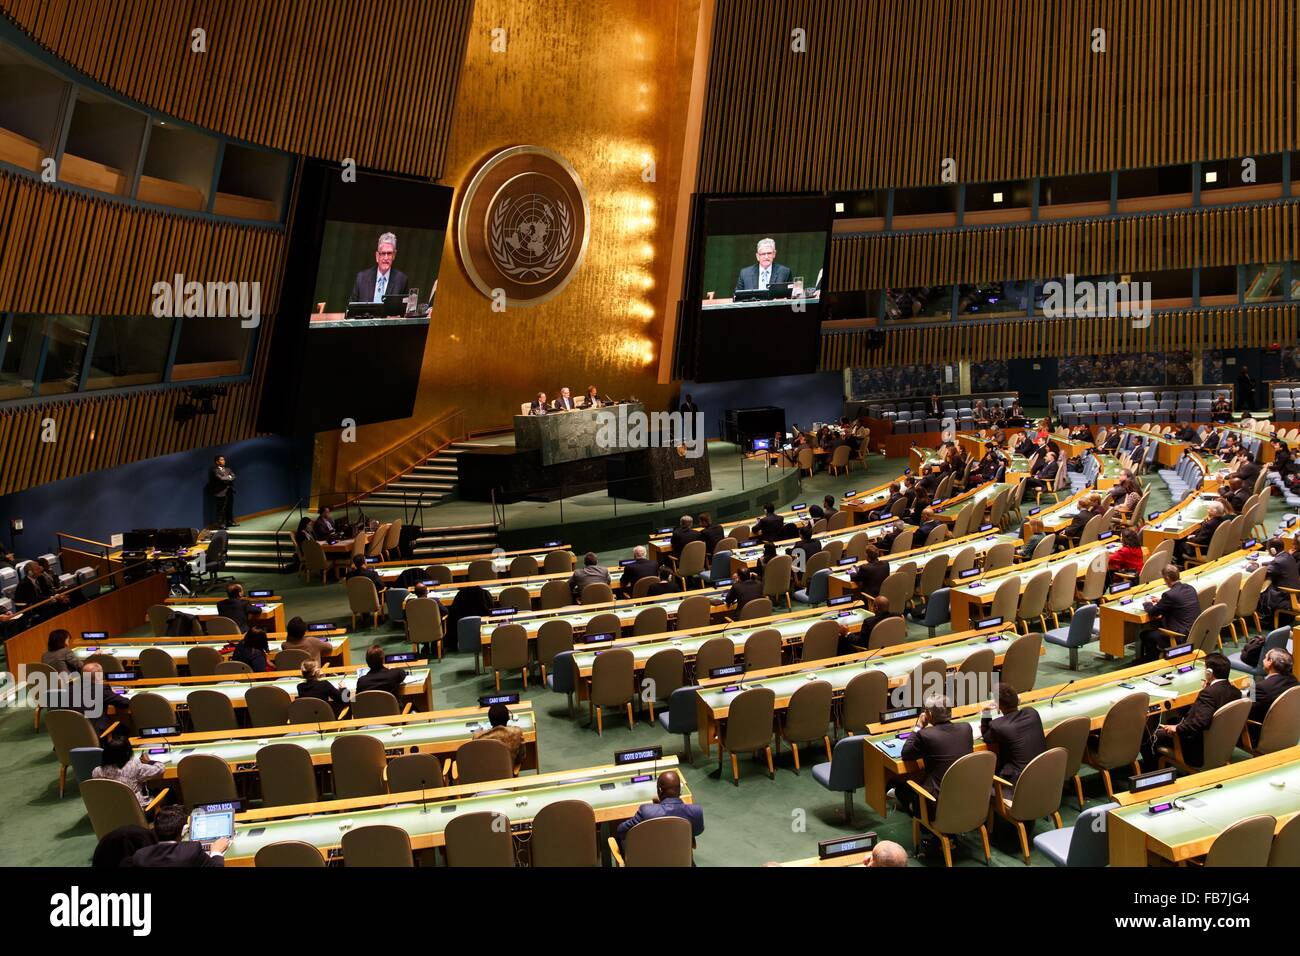 (160111) -- UNITED NATIONS, Jan. 11, 2016 (Xinhua) -- The United Nations holds a meeting at its headquarters in - Stock Image